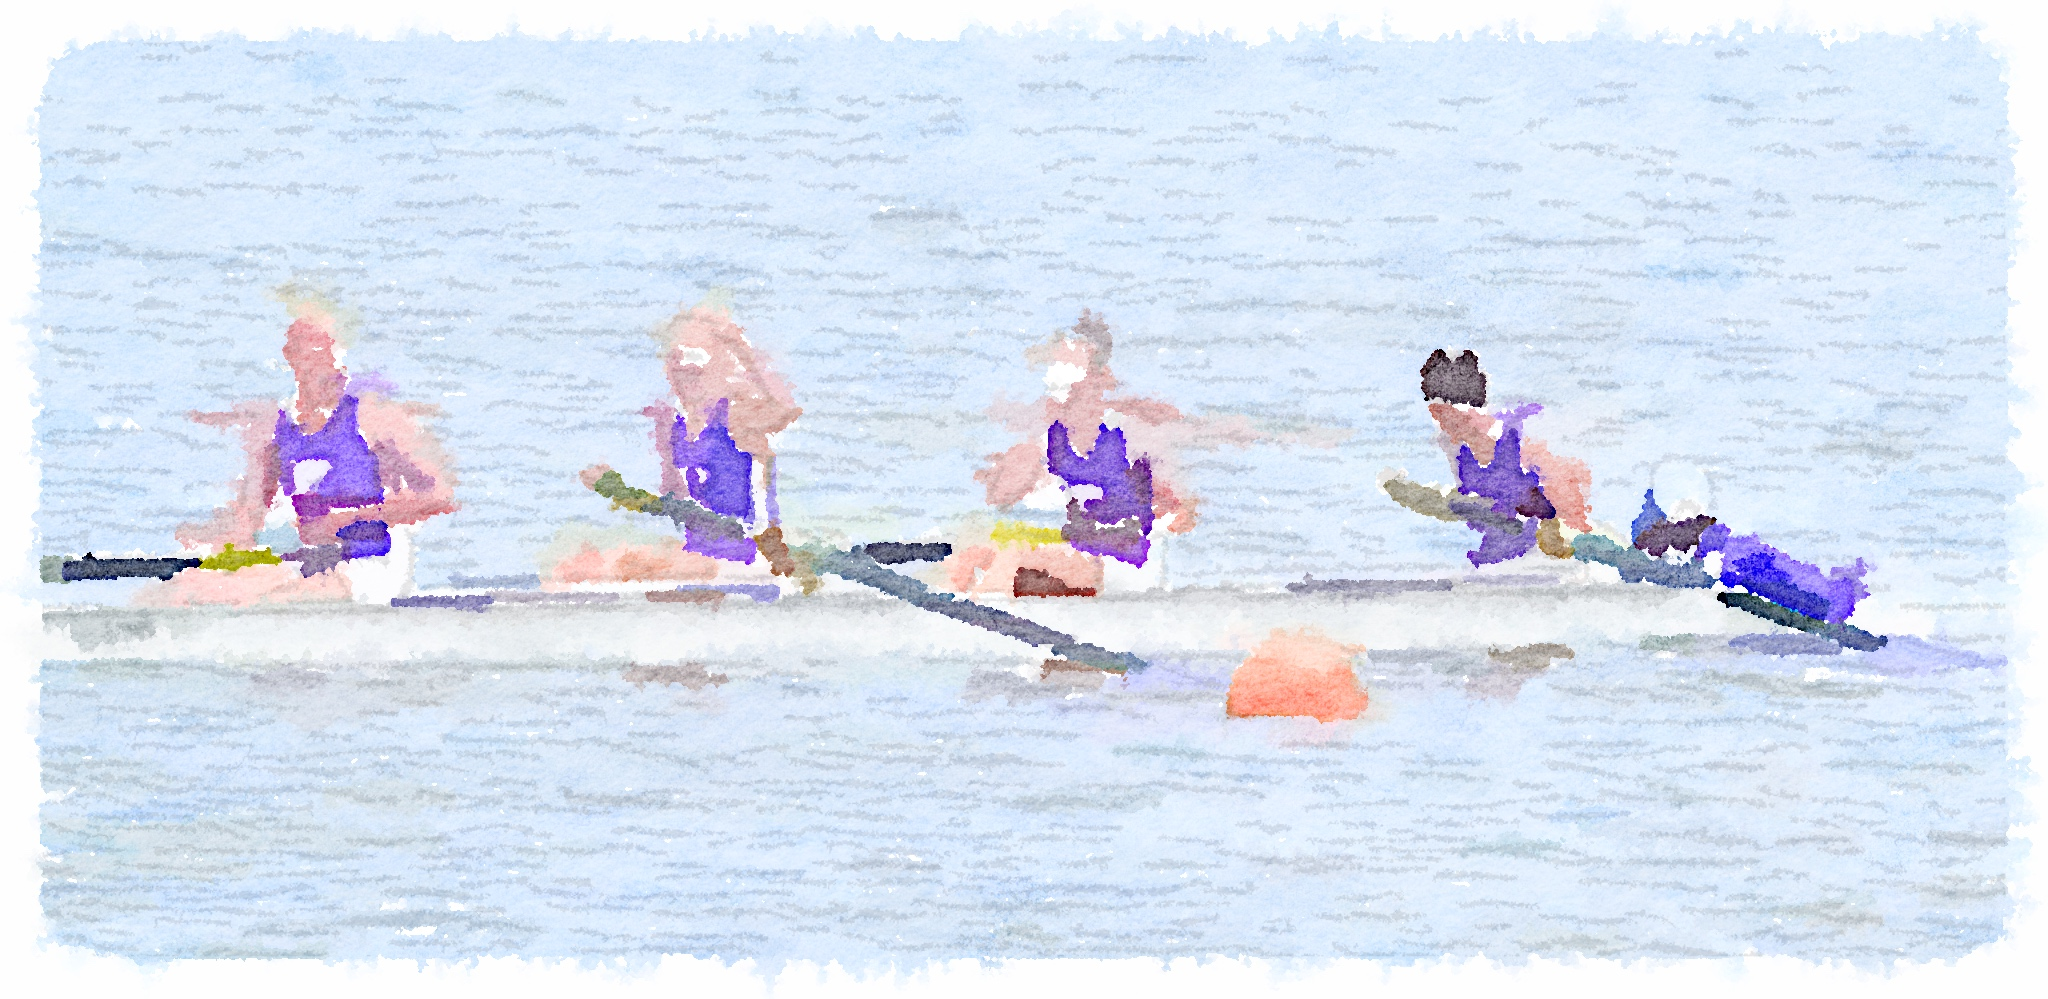 Pioneer Girl's Rowing wins 4th Straight Title